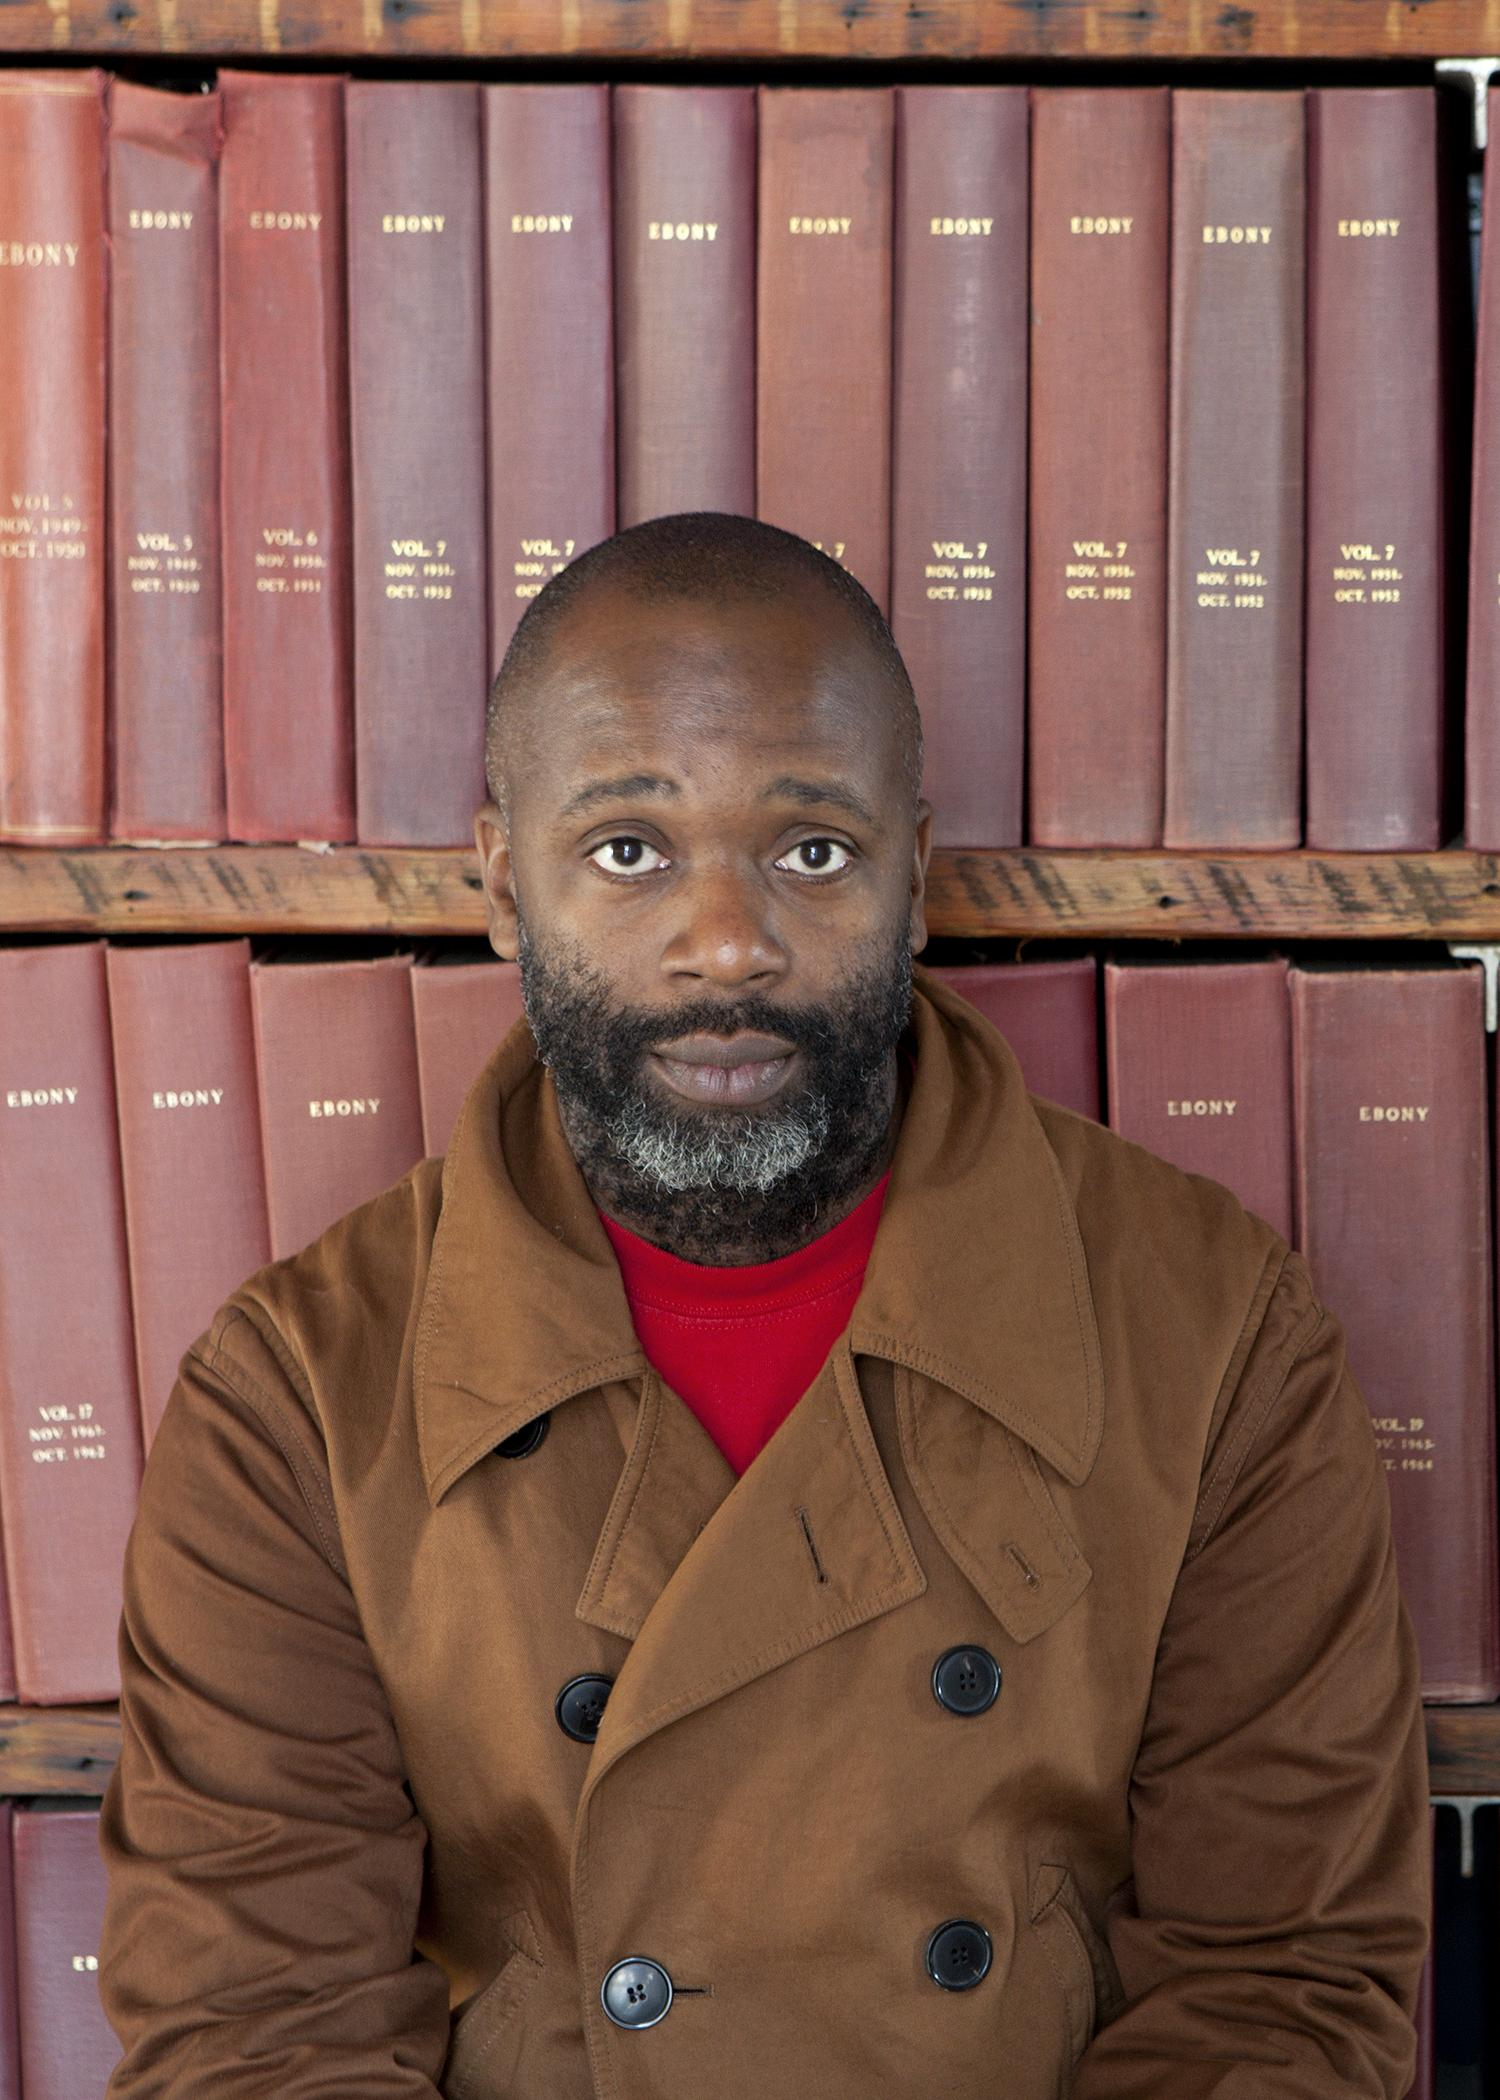 """A dark-skinned person with a beard and wearing a taupe coat sits against shelves of large, reddish-brown books embossed with the word """"EBONY"""" in gold."""